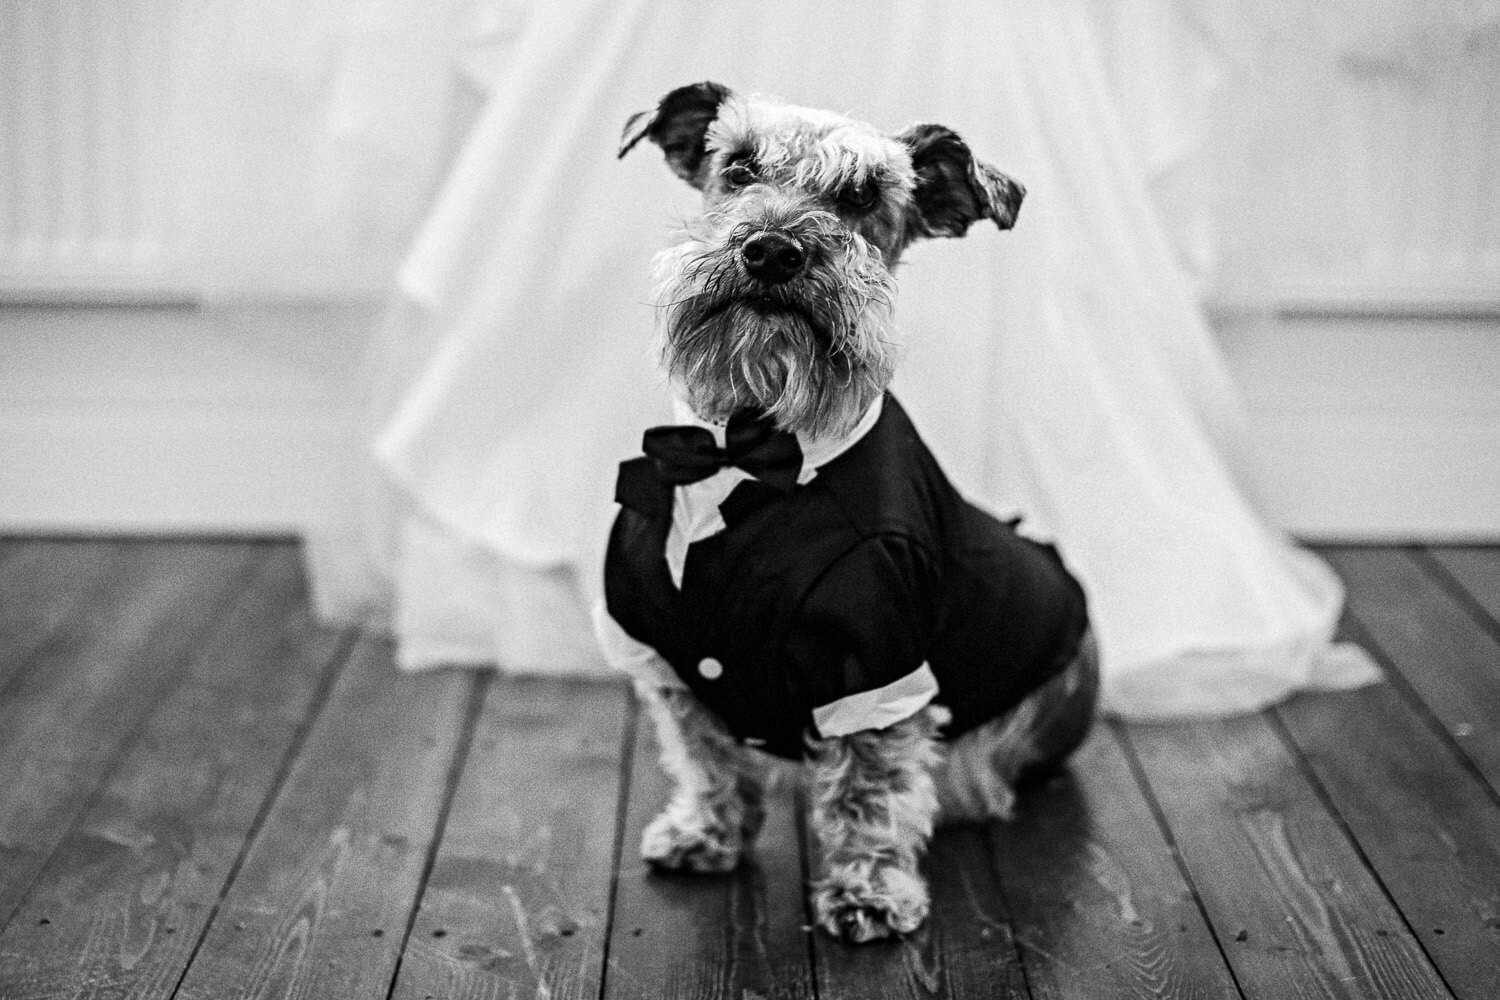 Dog in Tuxedo 30 James Street Liverpool wedding photography